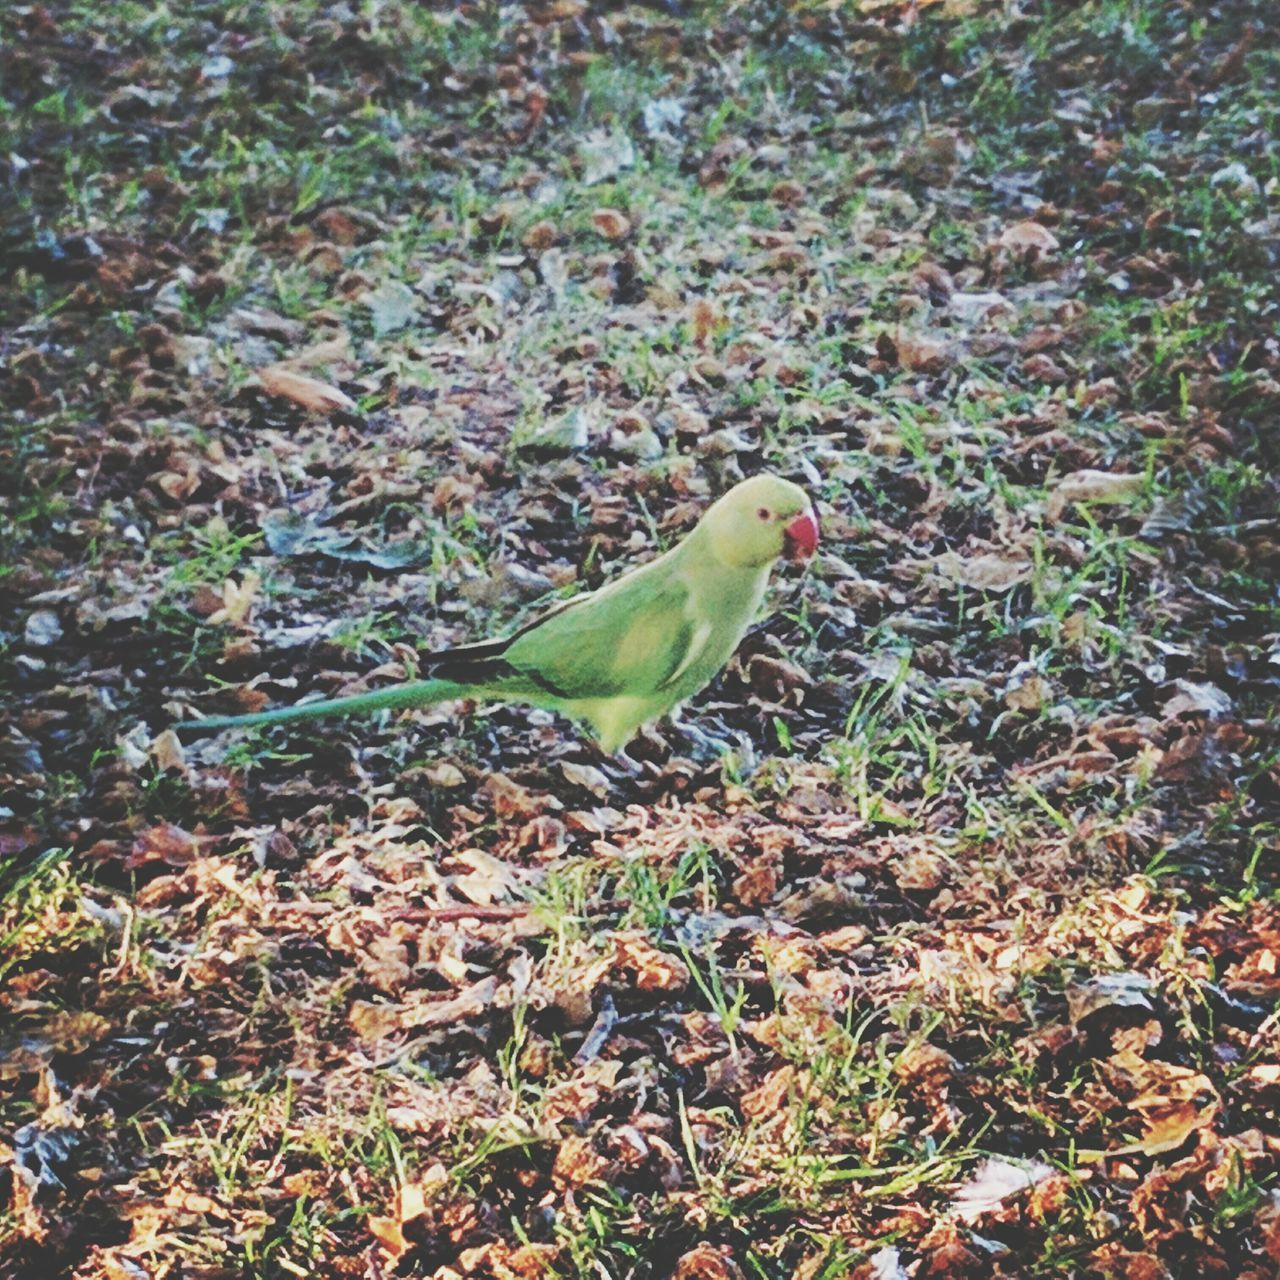 bird, animal themes, green color, one animal, animals in the wild, high angle view, day, nature, no people, field, outdoors, leaf, close-up